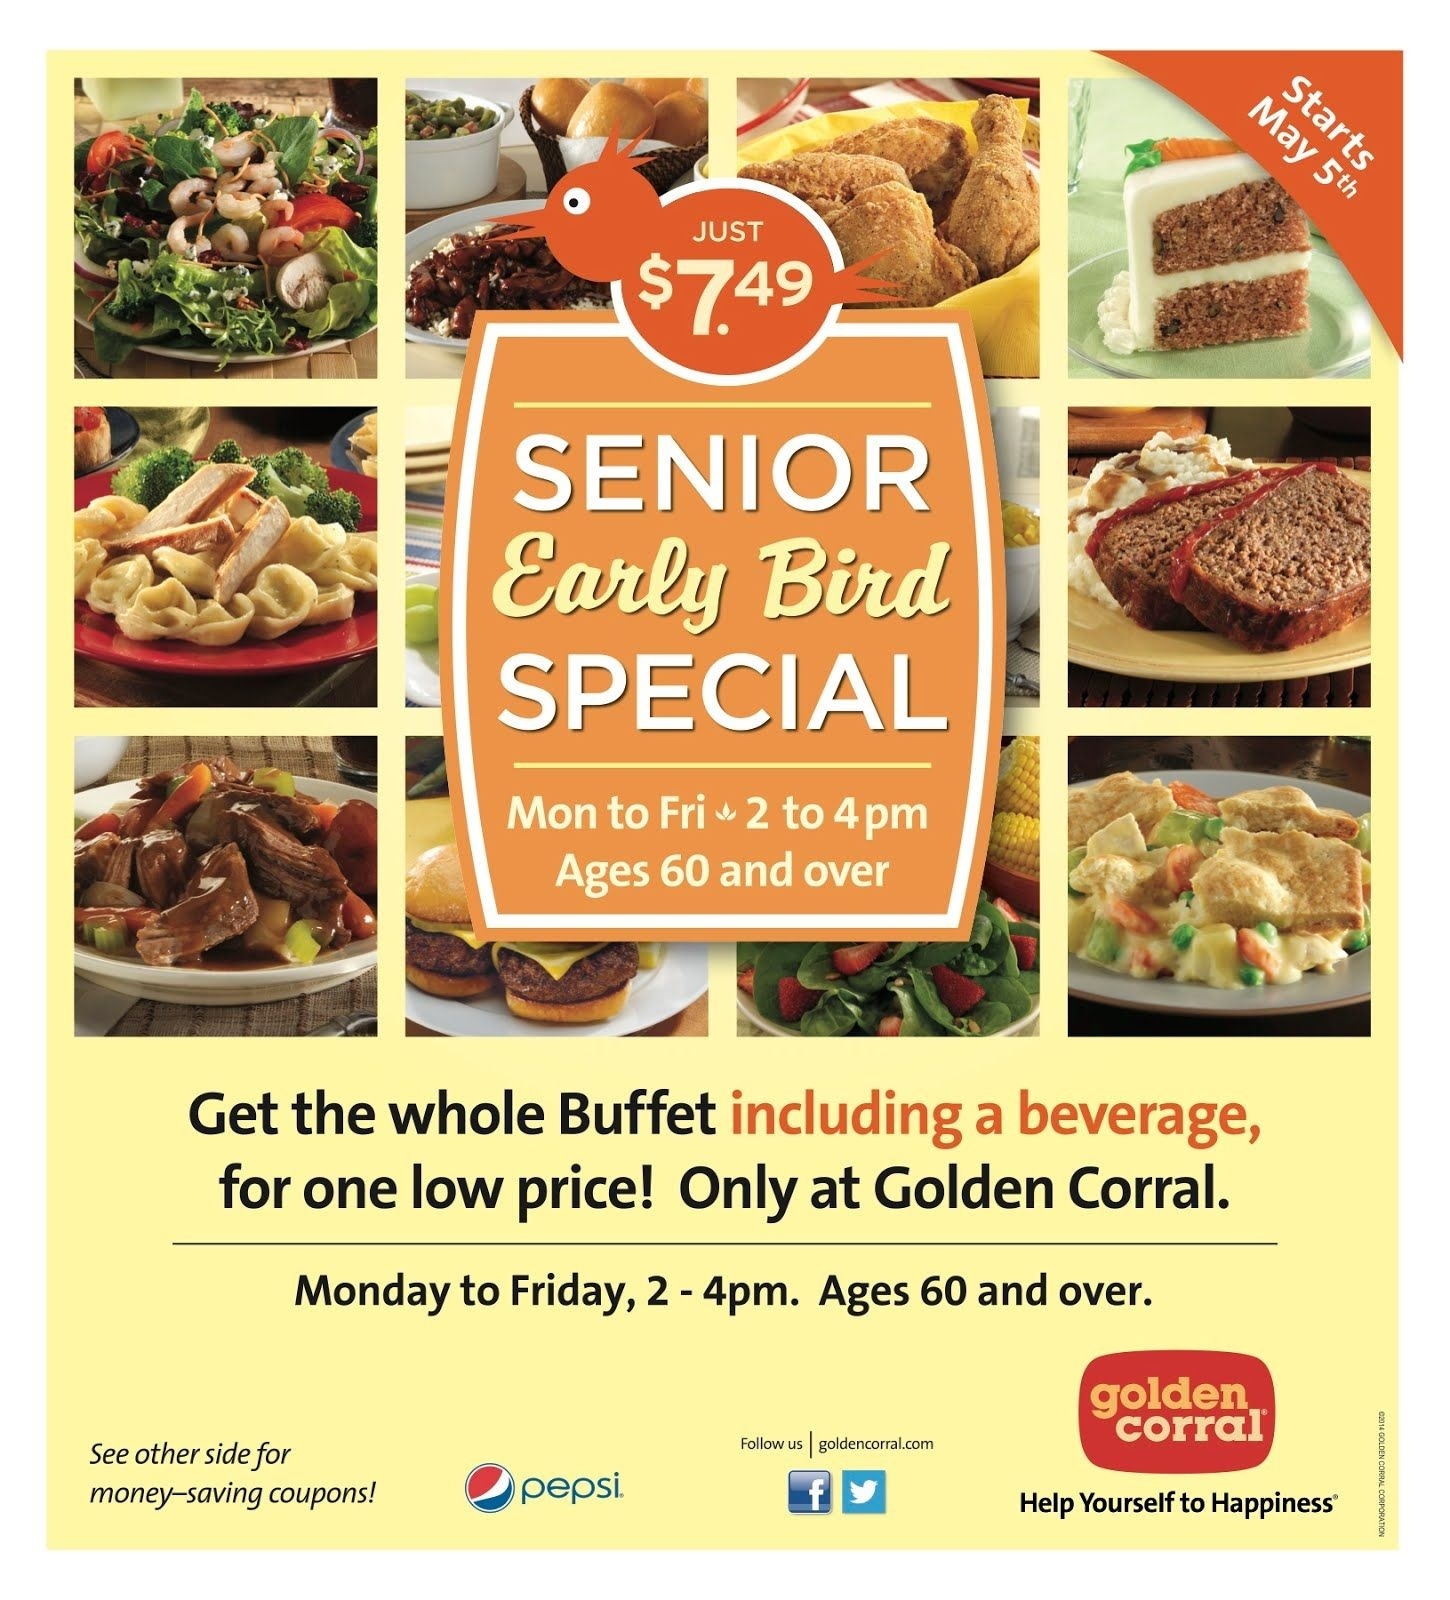 Golden Corral: Senior Early Bird Special, M-F 2-4Pm, 60+, For $7.49 - Golden Corral Coupons Buy One Get One Free Printable